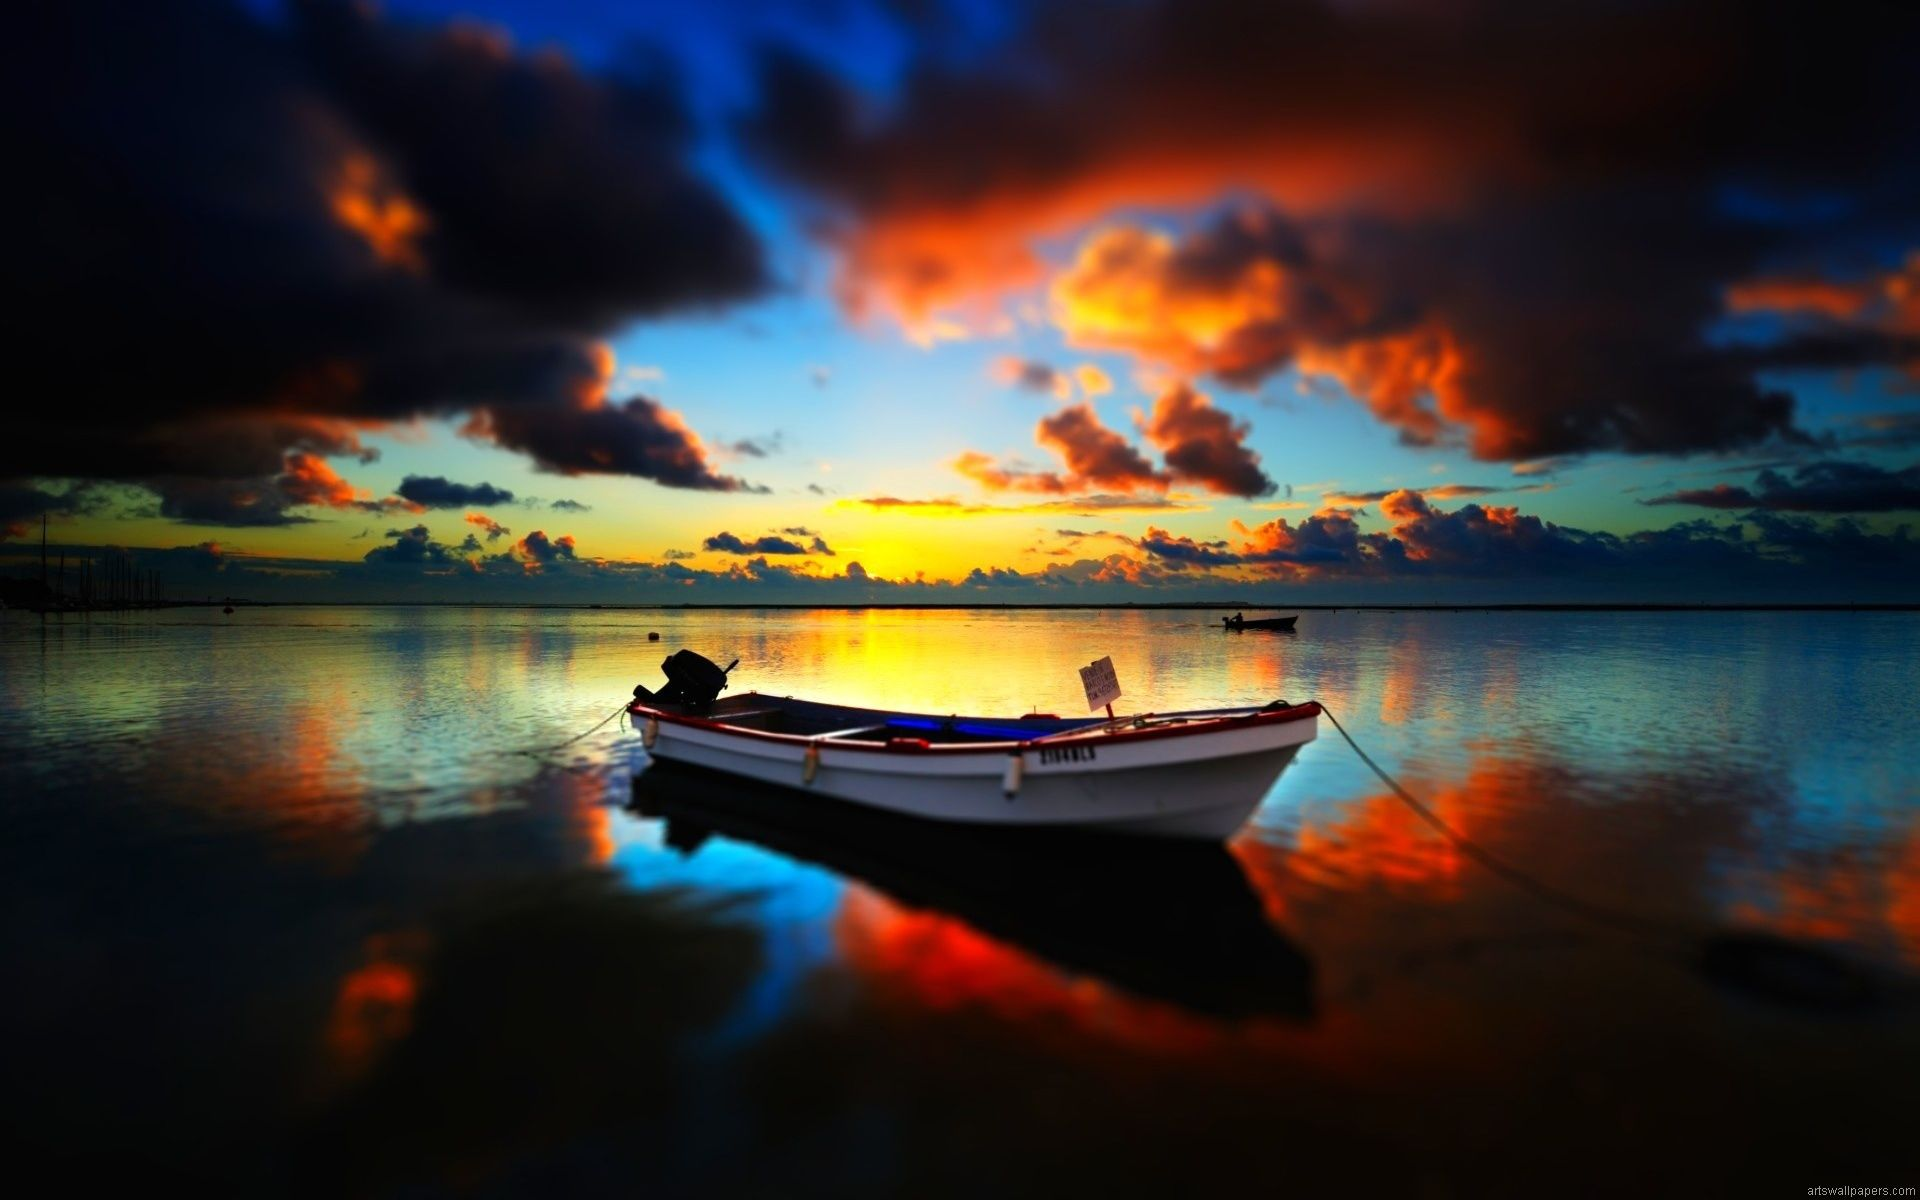 Hd Wallpapers 1080p Widescreen Full Hd 1080p Wallpapers Hd Widescreen Desktop Pictures Images Sunset Wallpaper Boat Wallpaper Beautiful Sunset